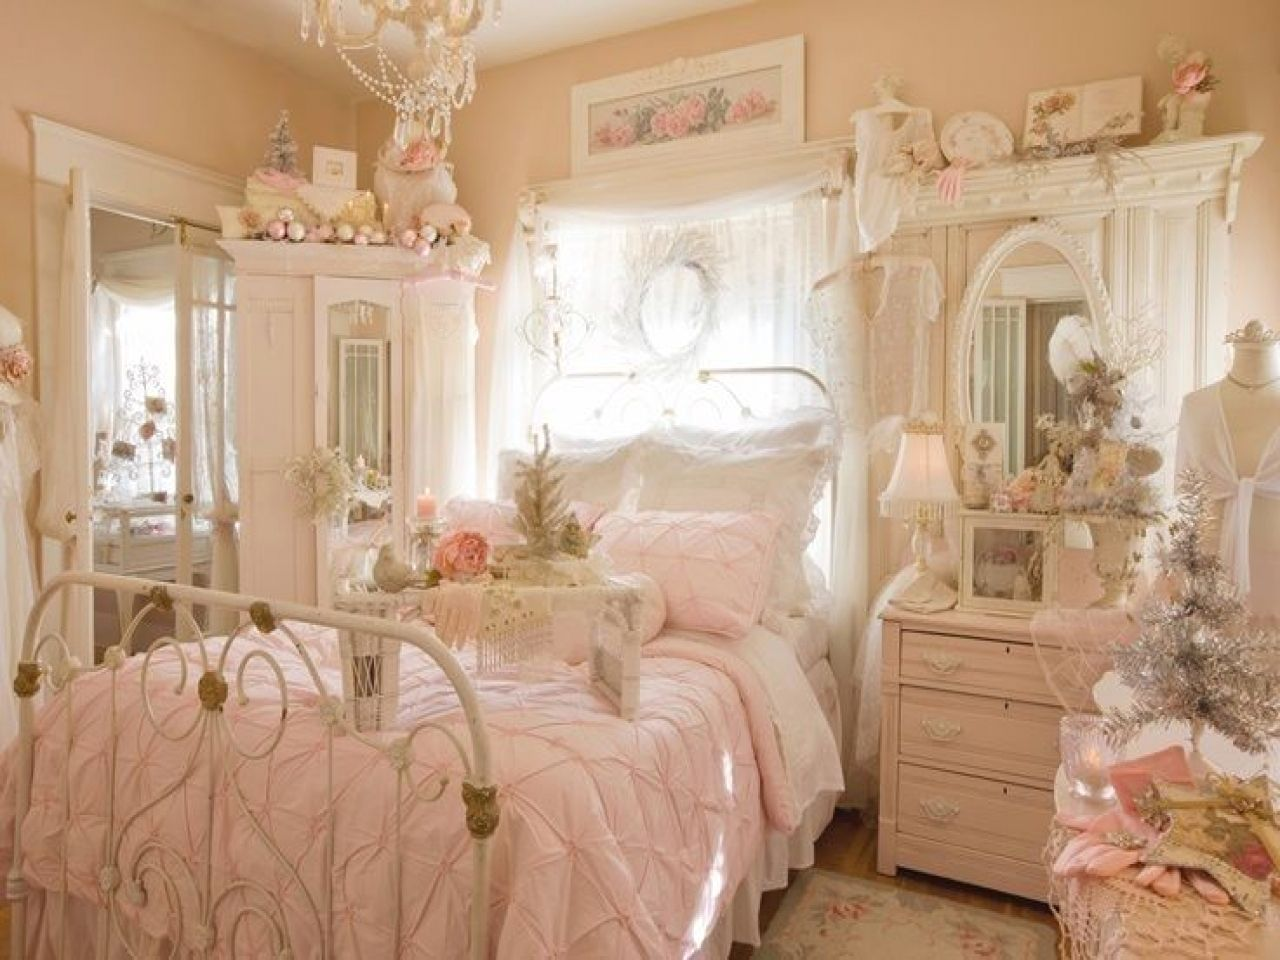 10 Beautiful Shabby Chic Style Bedroom Projects You Can Do Yourself For Your Home Romantic Shabby Chic Decor Bedroom Chic Bedroom Decor Chic Bedroom Design